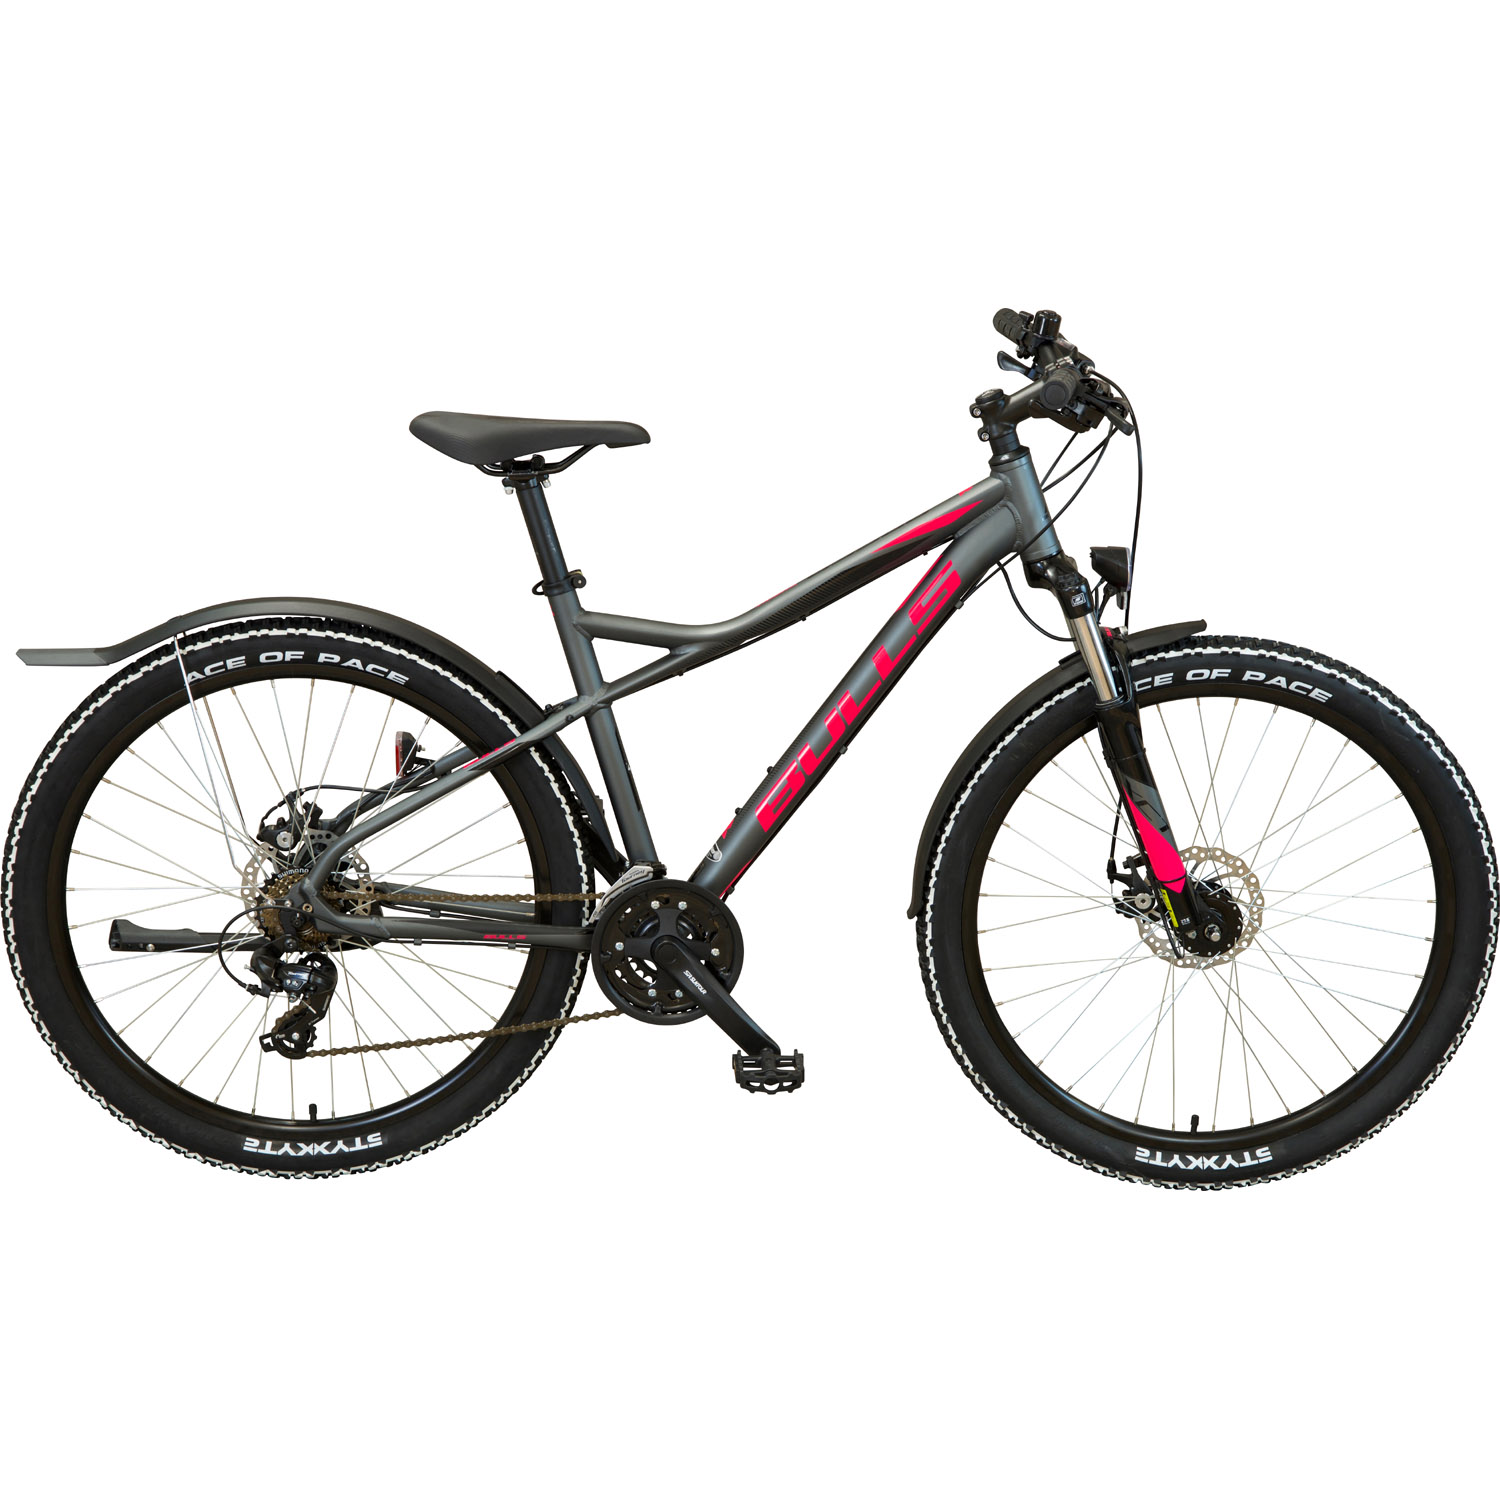 bulls racer street damen mountainbike 27 5 zoll 41 cm. Black Bedroom Furniture Sets. Home Design Ideas